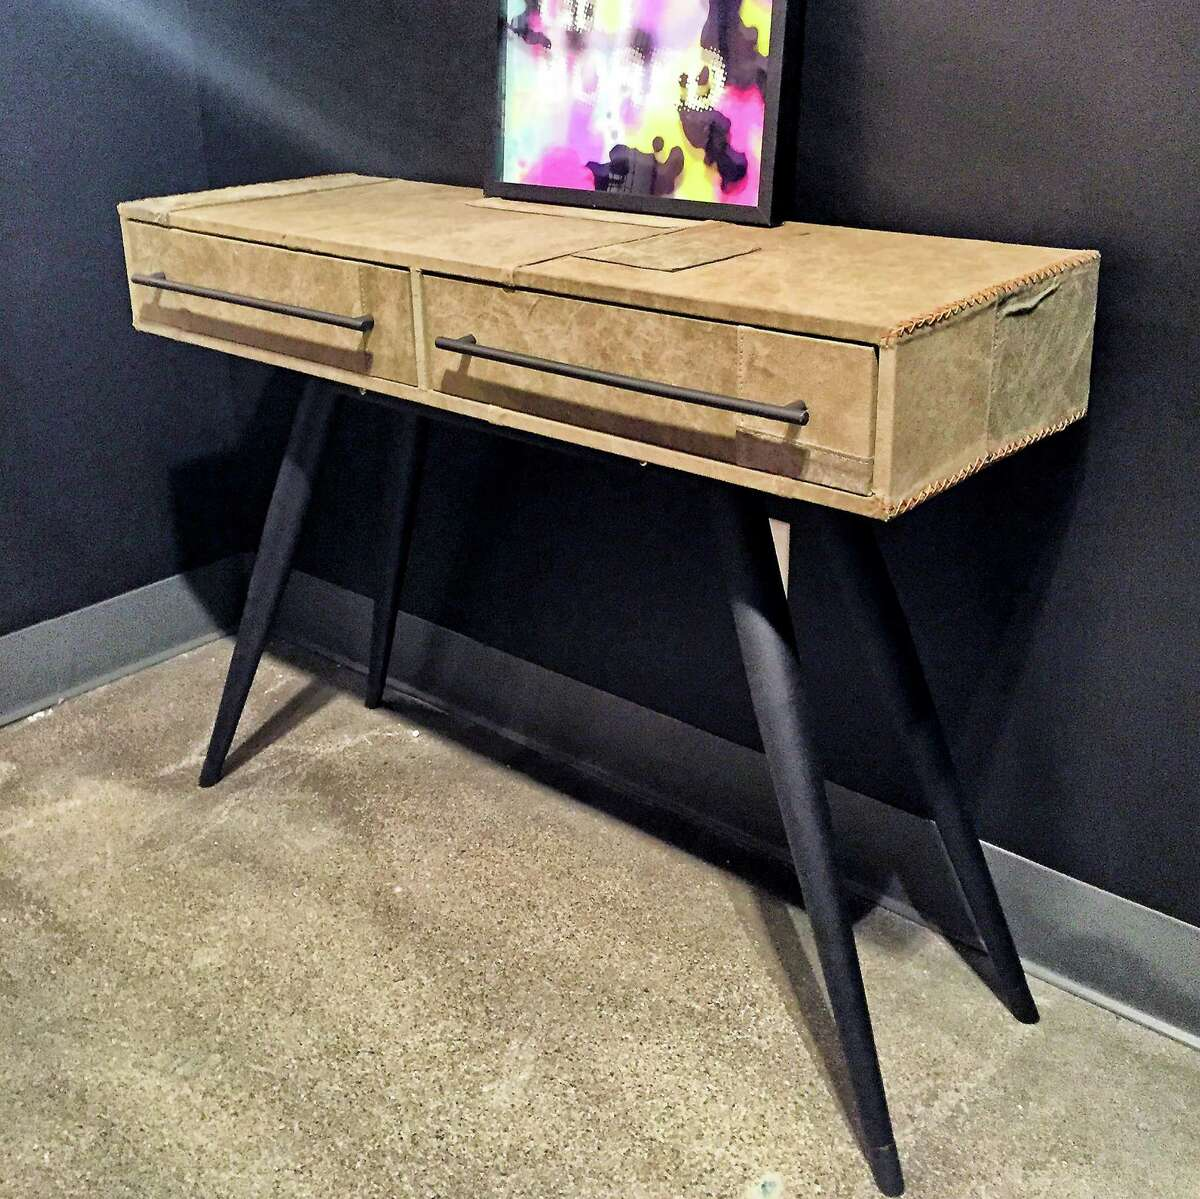 The Trunk Console table by United Strangers is made with patched vintage army tent fabric on a distressed black metal base with cross stitch accents. (Patricia Sheridan/Pittsburgh Post-Gazette/TNS)